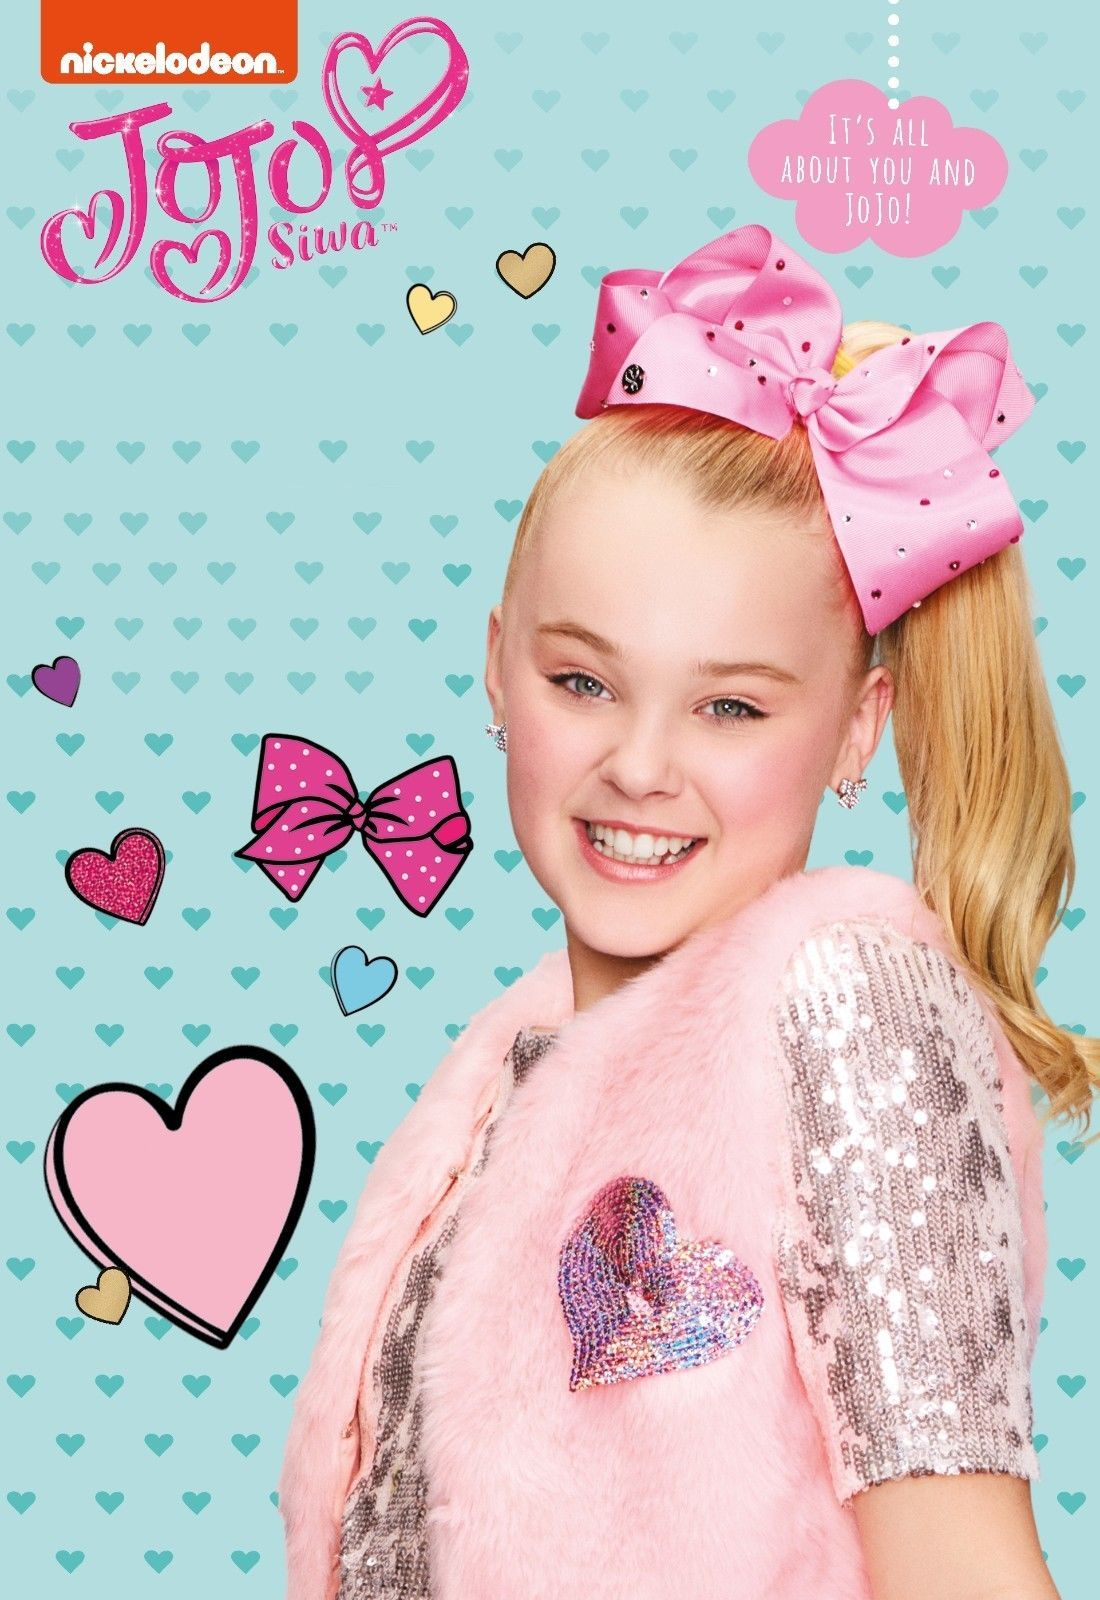 013be3be $9.99 - Jojo Siwa My World Poster Kids Music Star Tv Show Art Print 13X20